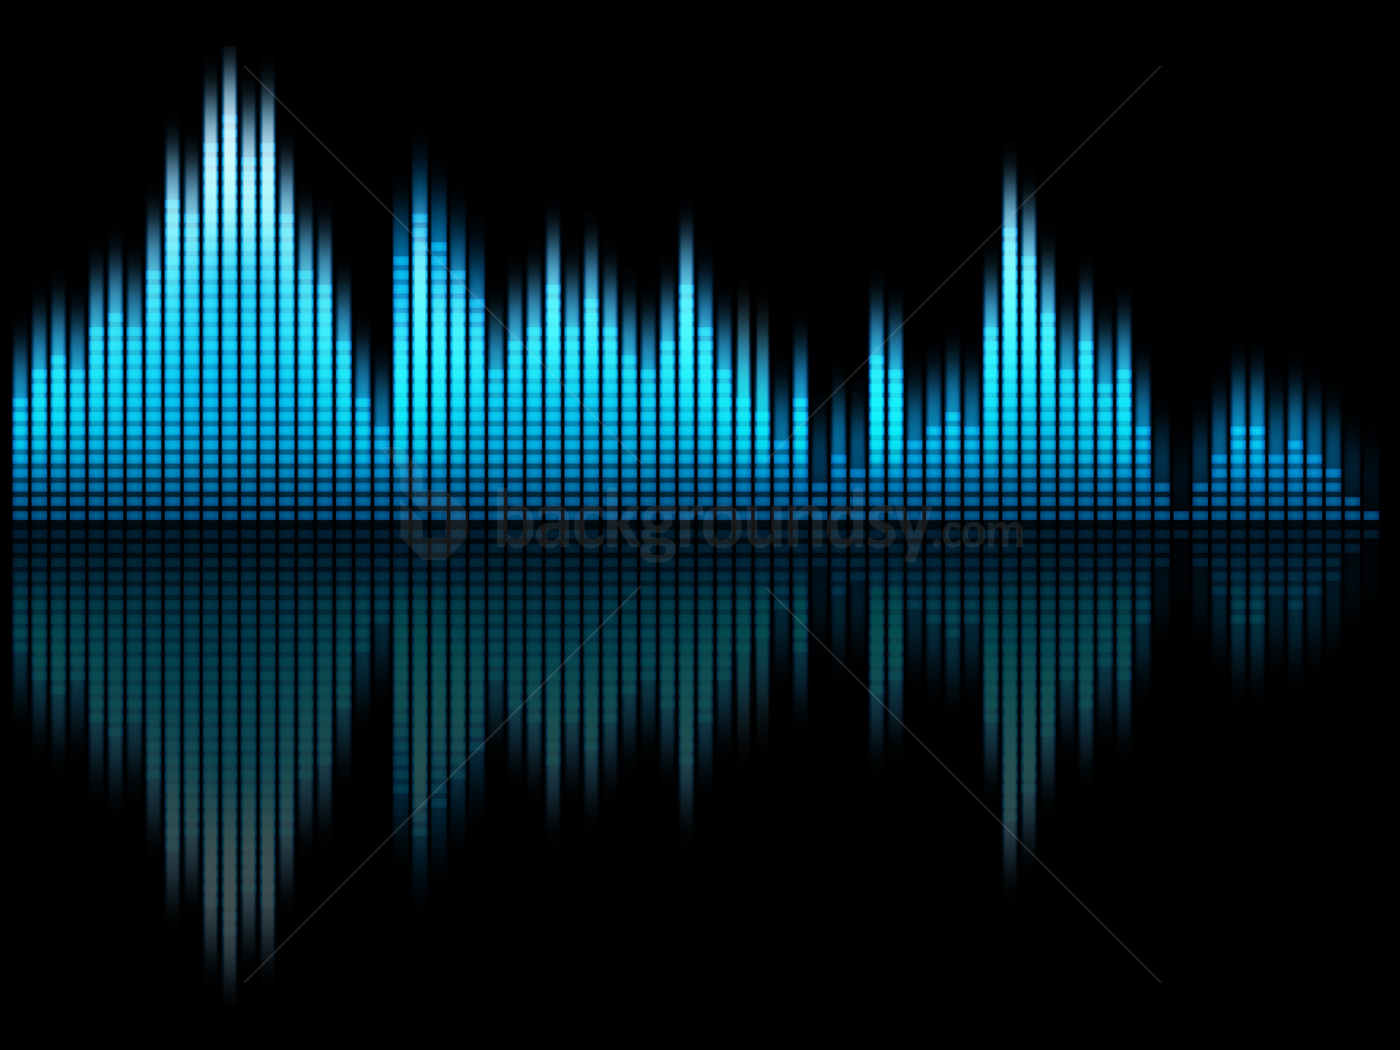 Music Equalizer Wallpaper: Music Equalizer Background